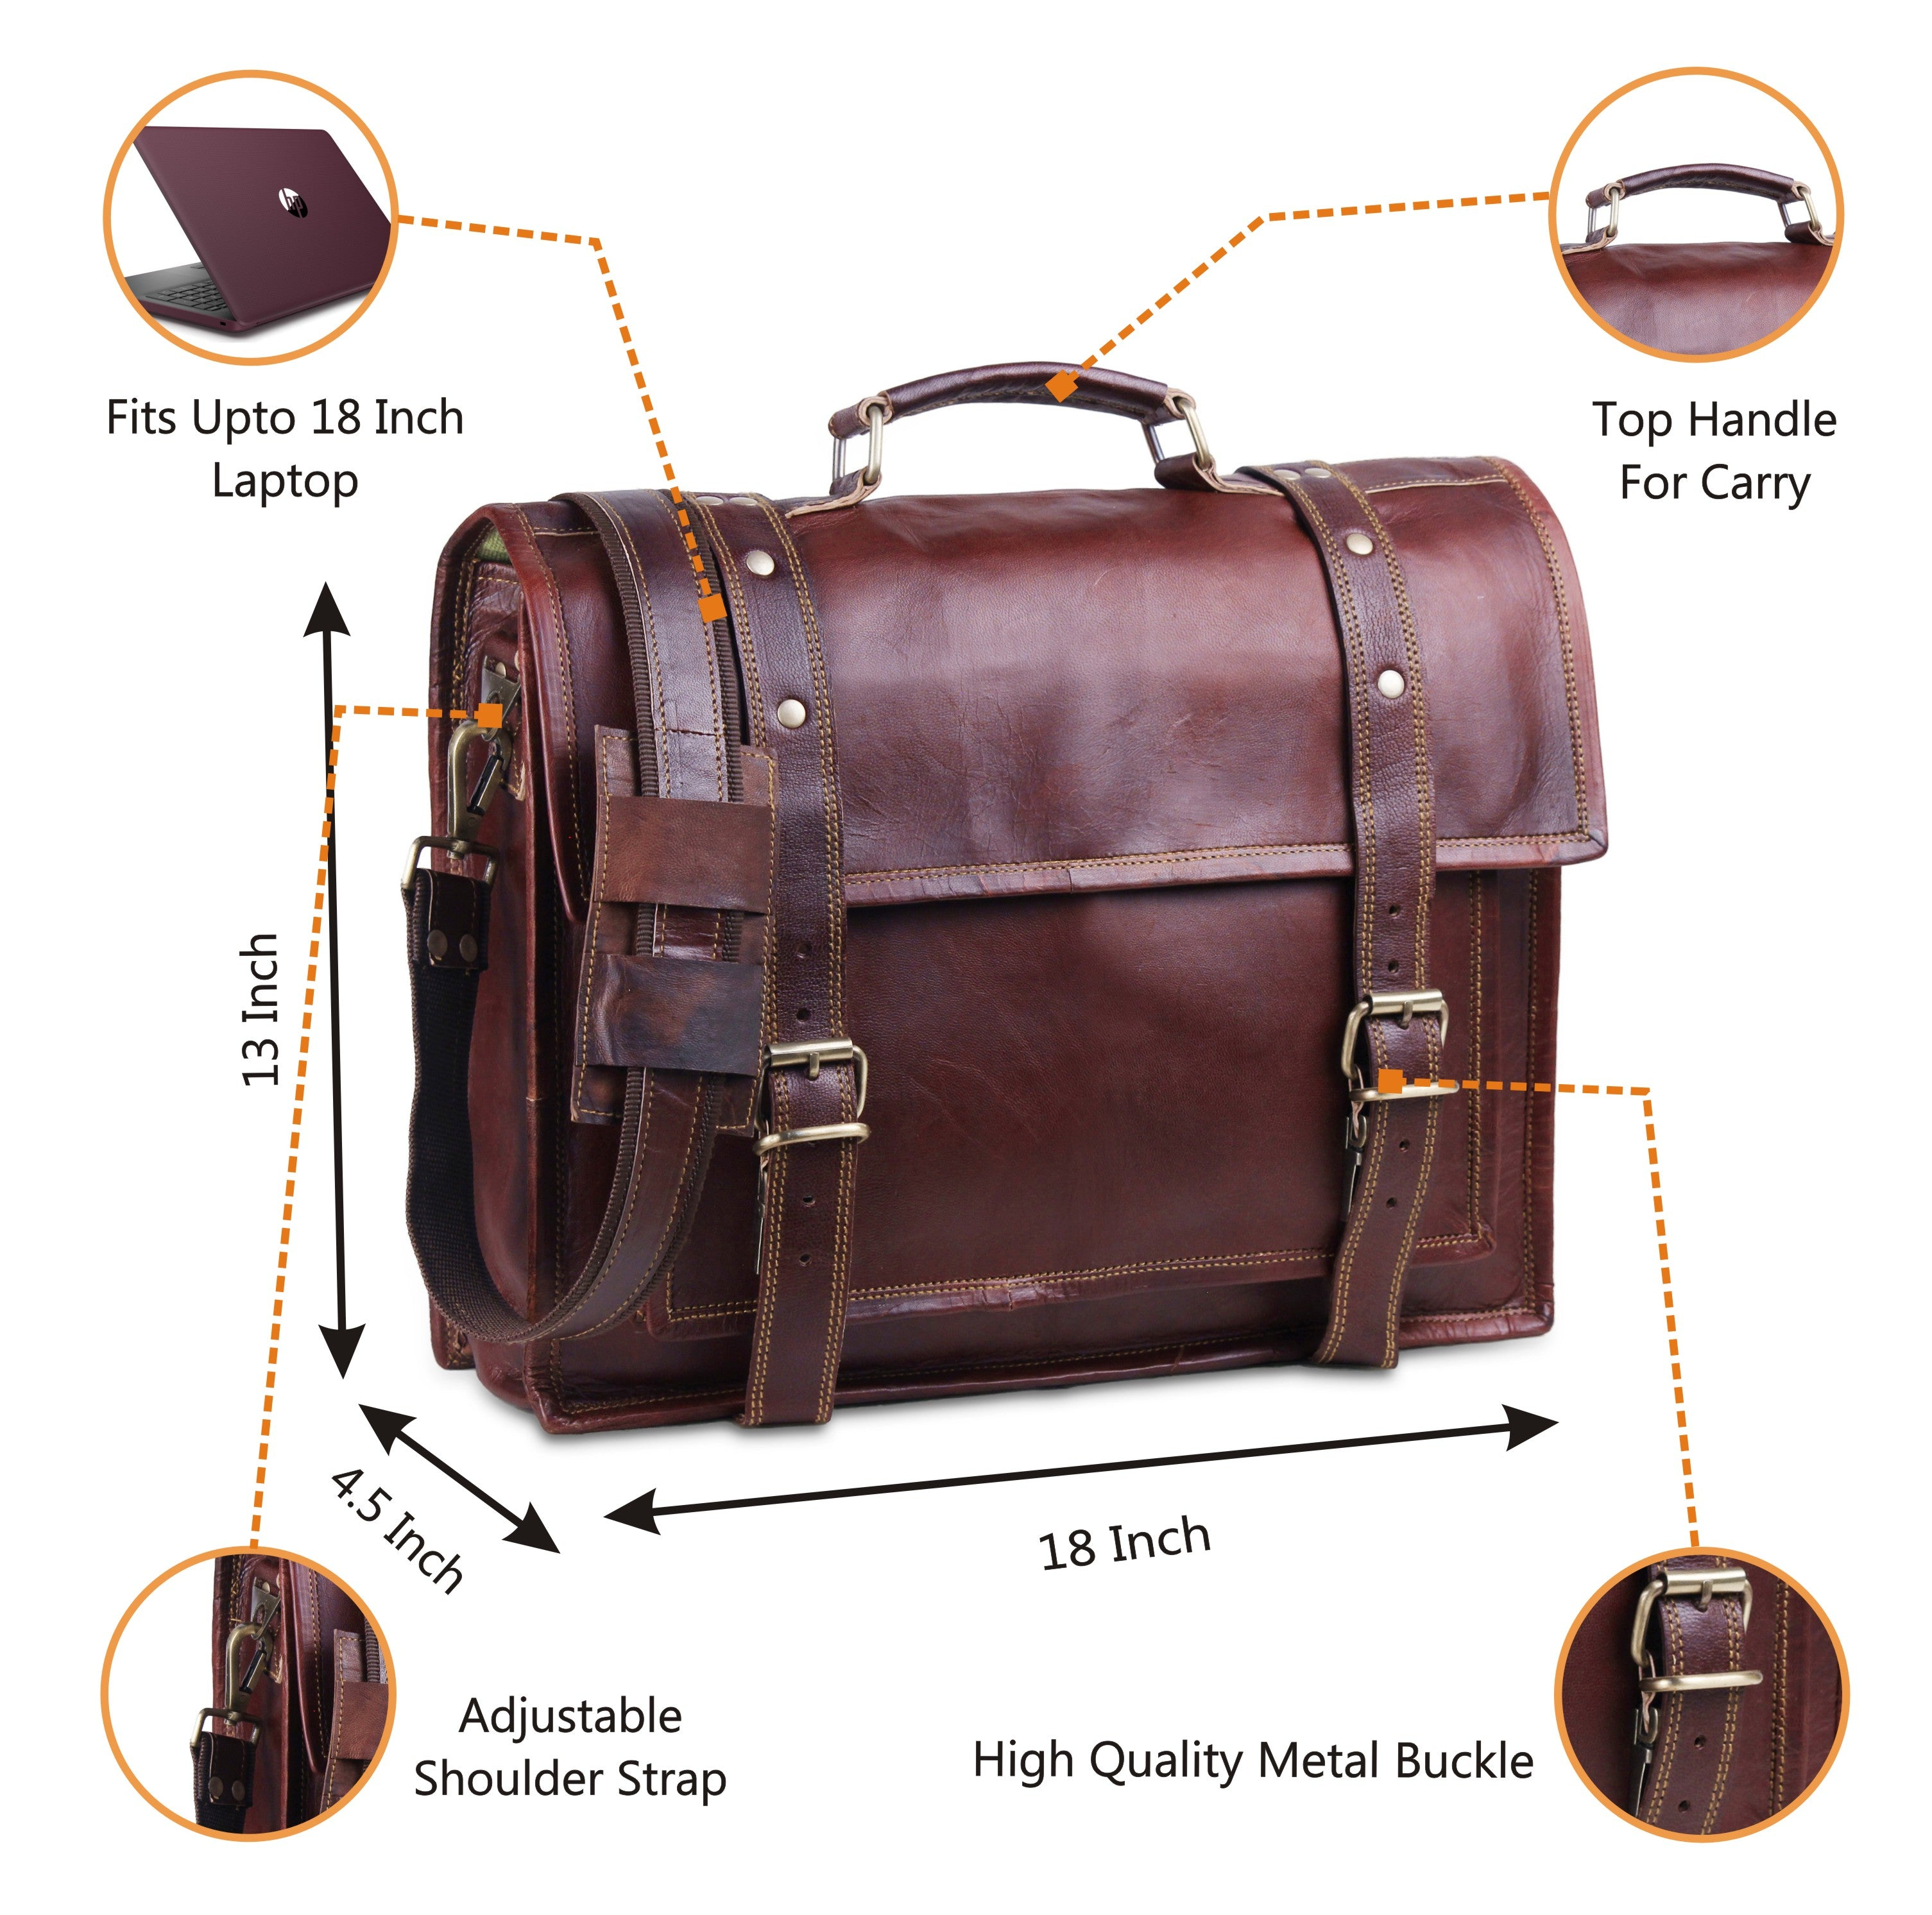 Full Grain Brown Leather Messenger Bag with Adjustable Strap